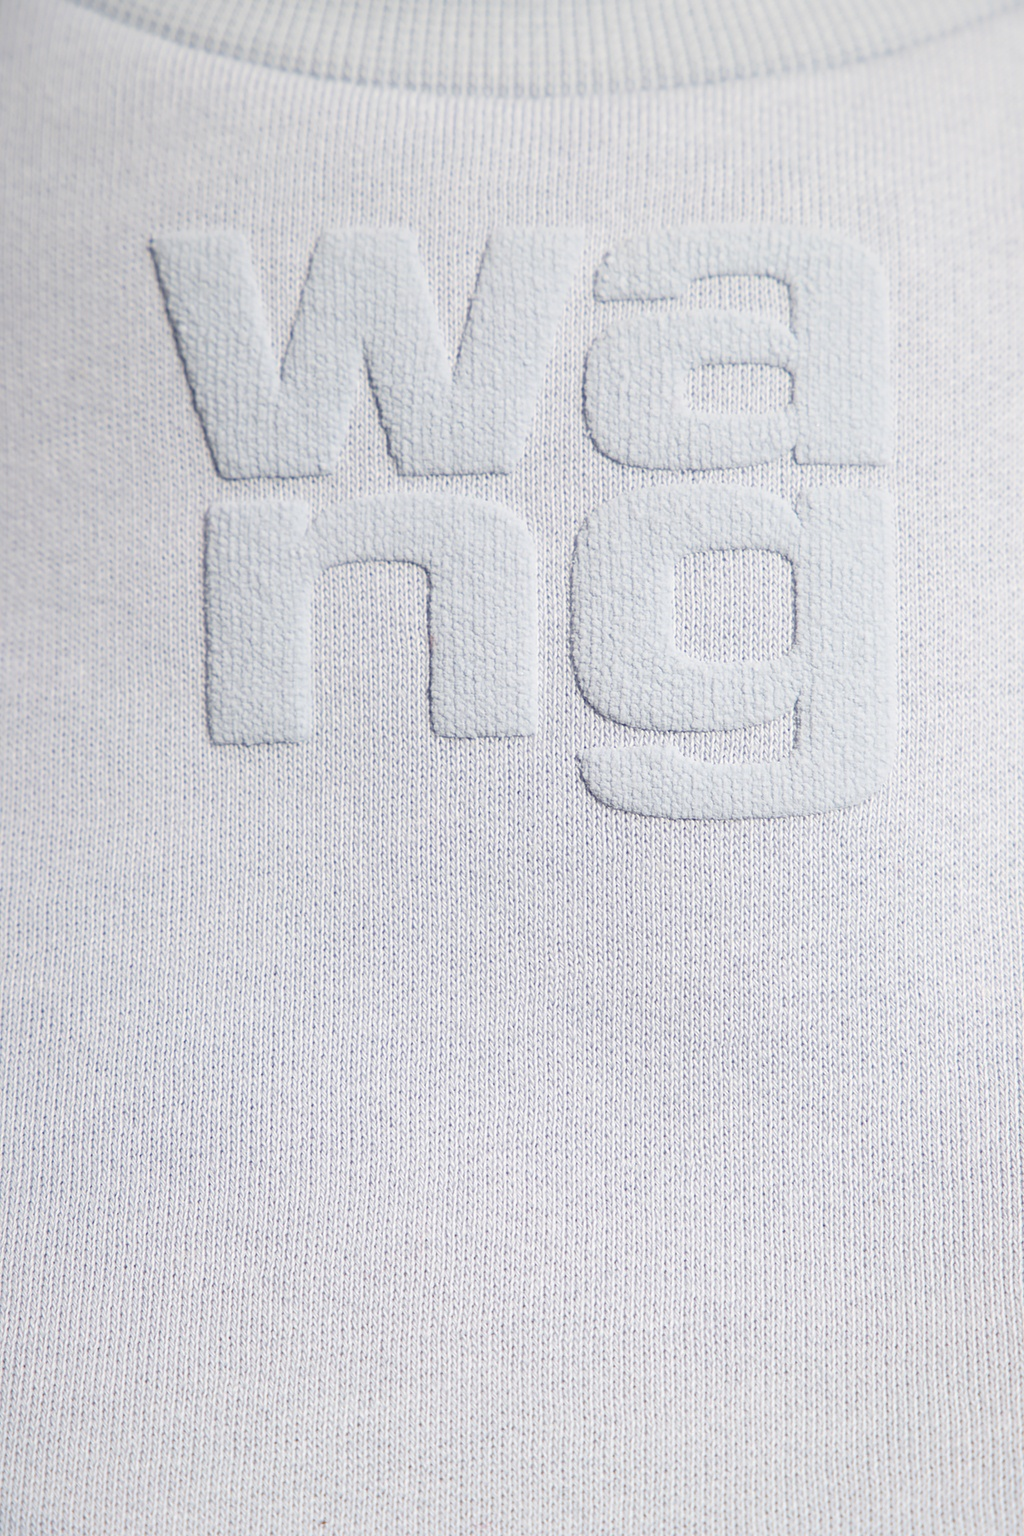 T by Alexander Wang Sweatshirt with logo